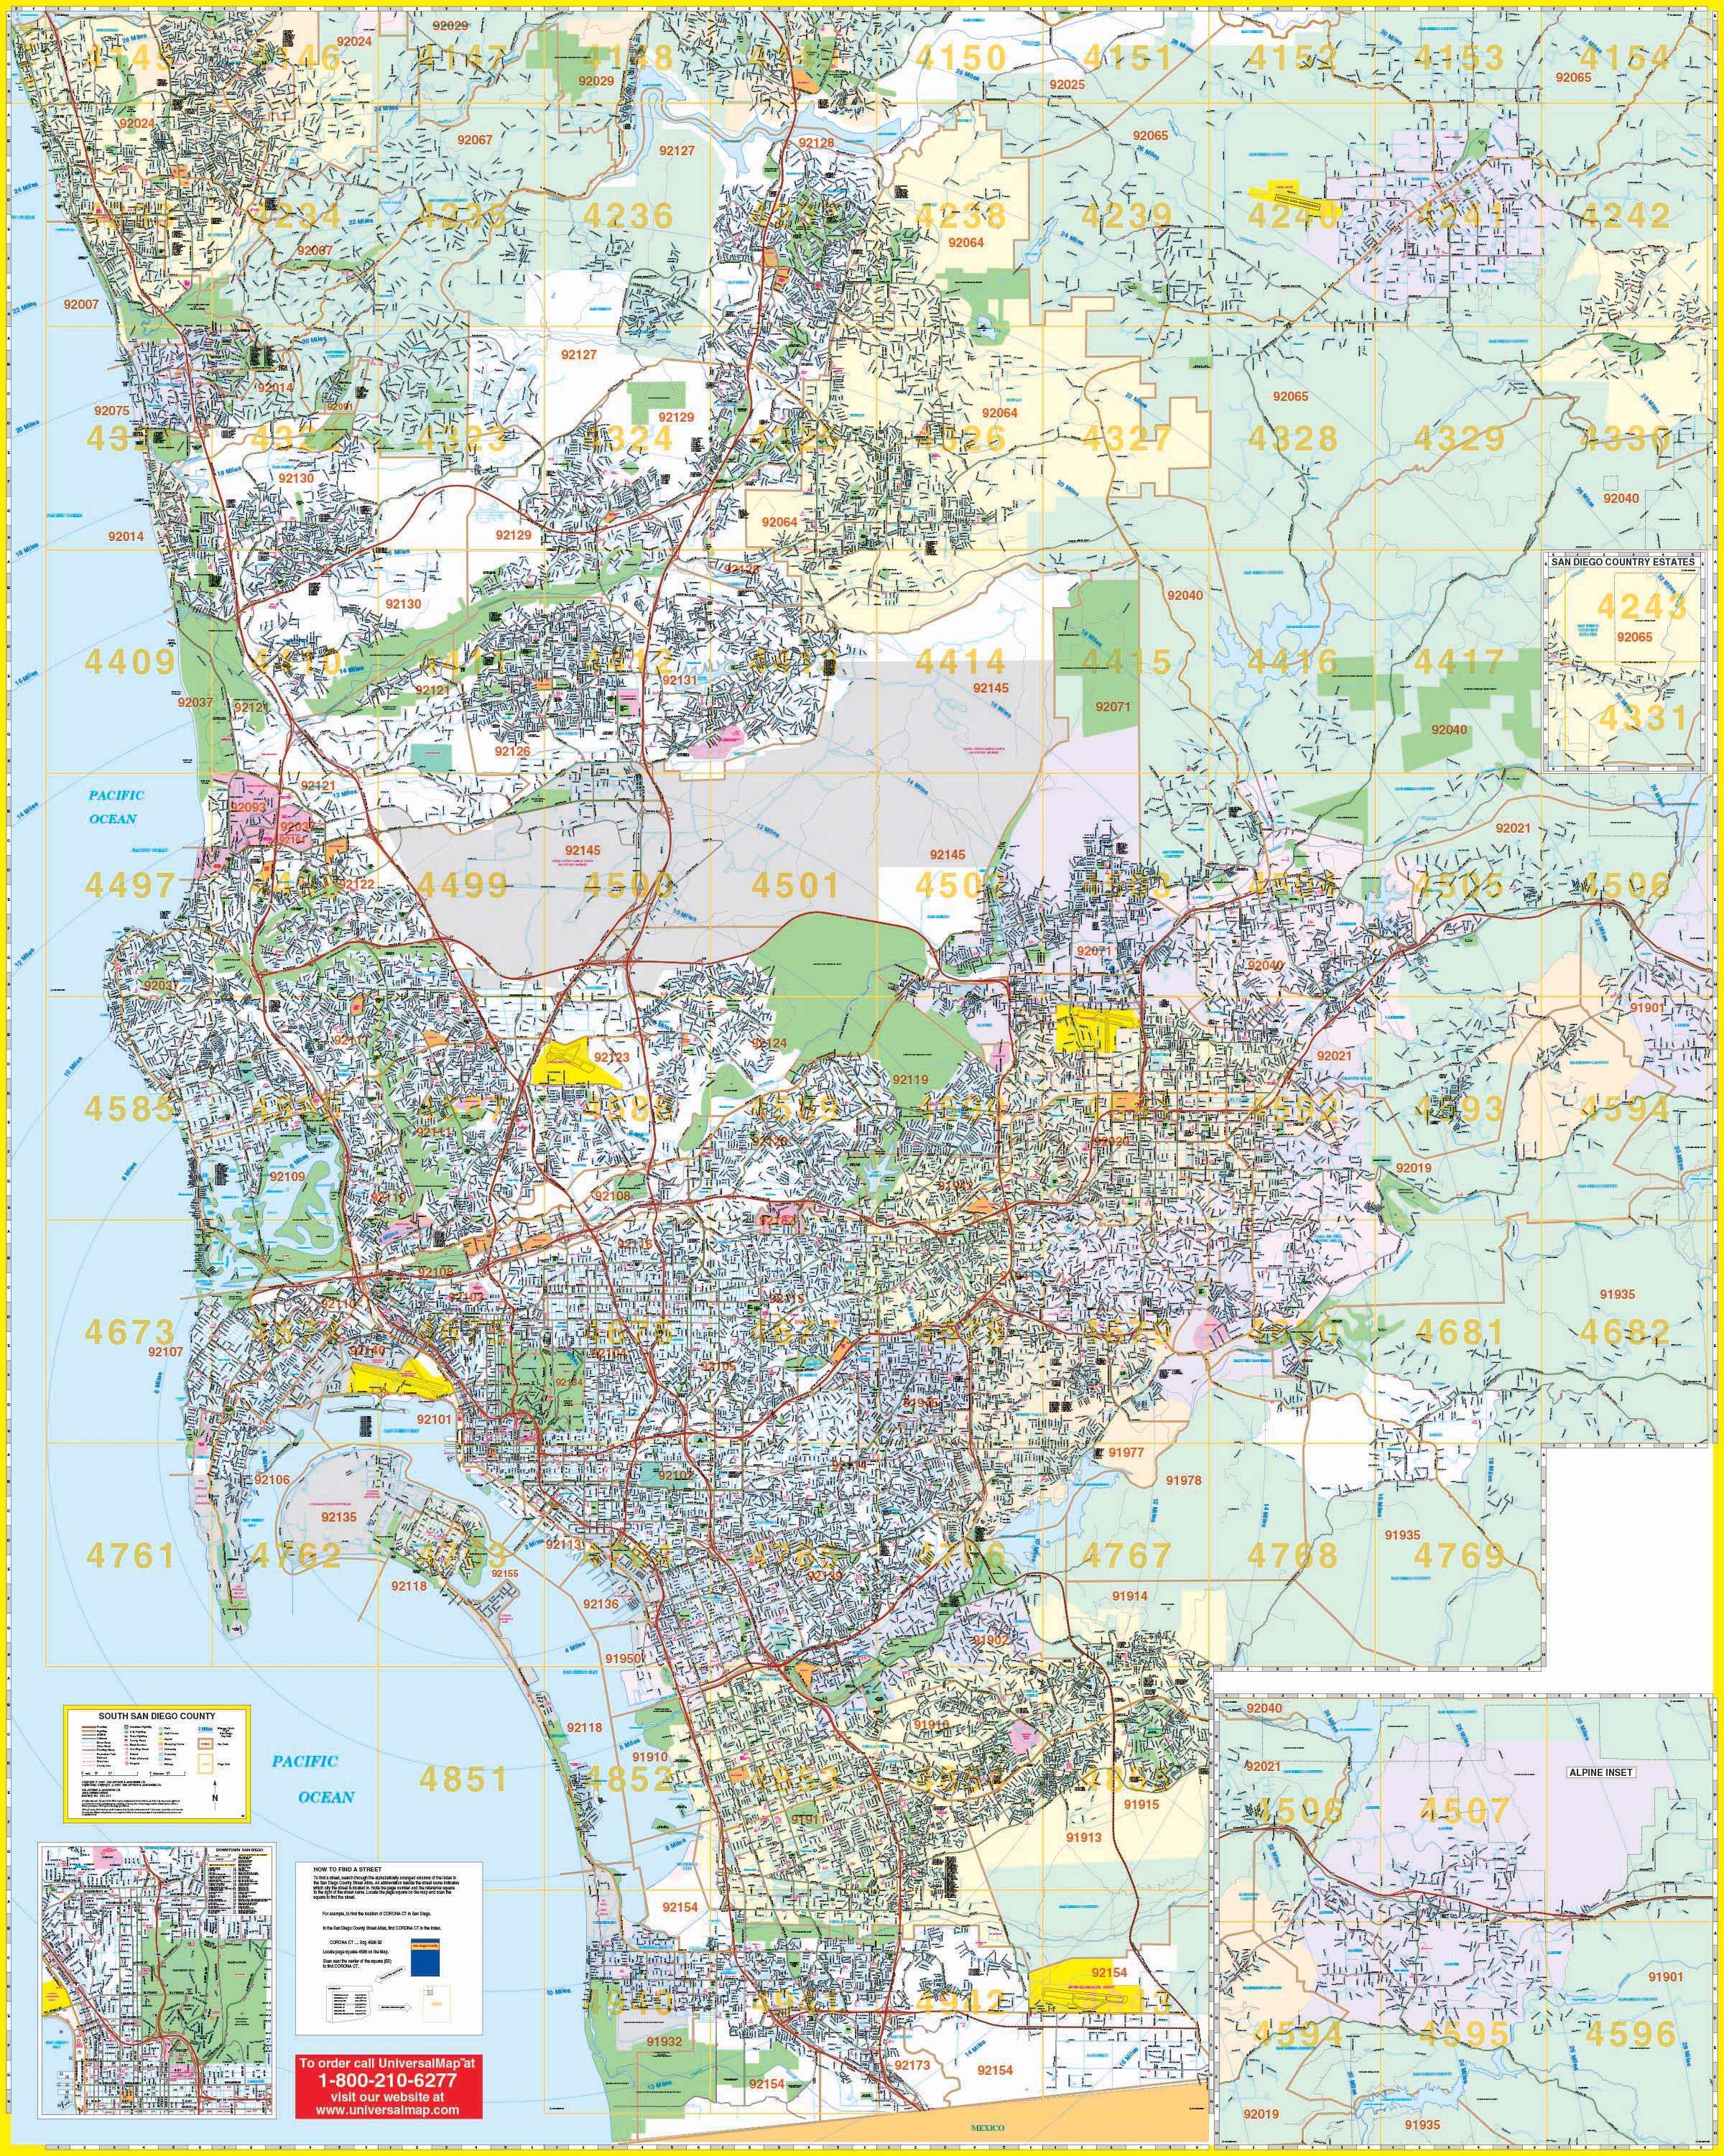 San Diego, CA South Wall Map – KAPPA MAP GROUP